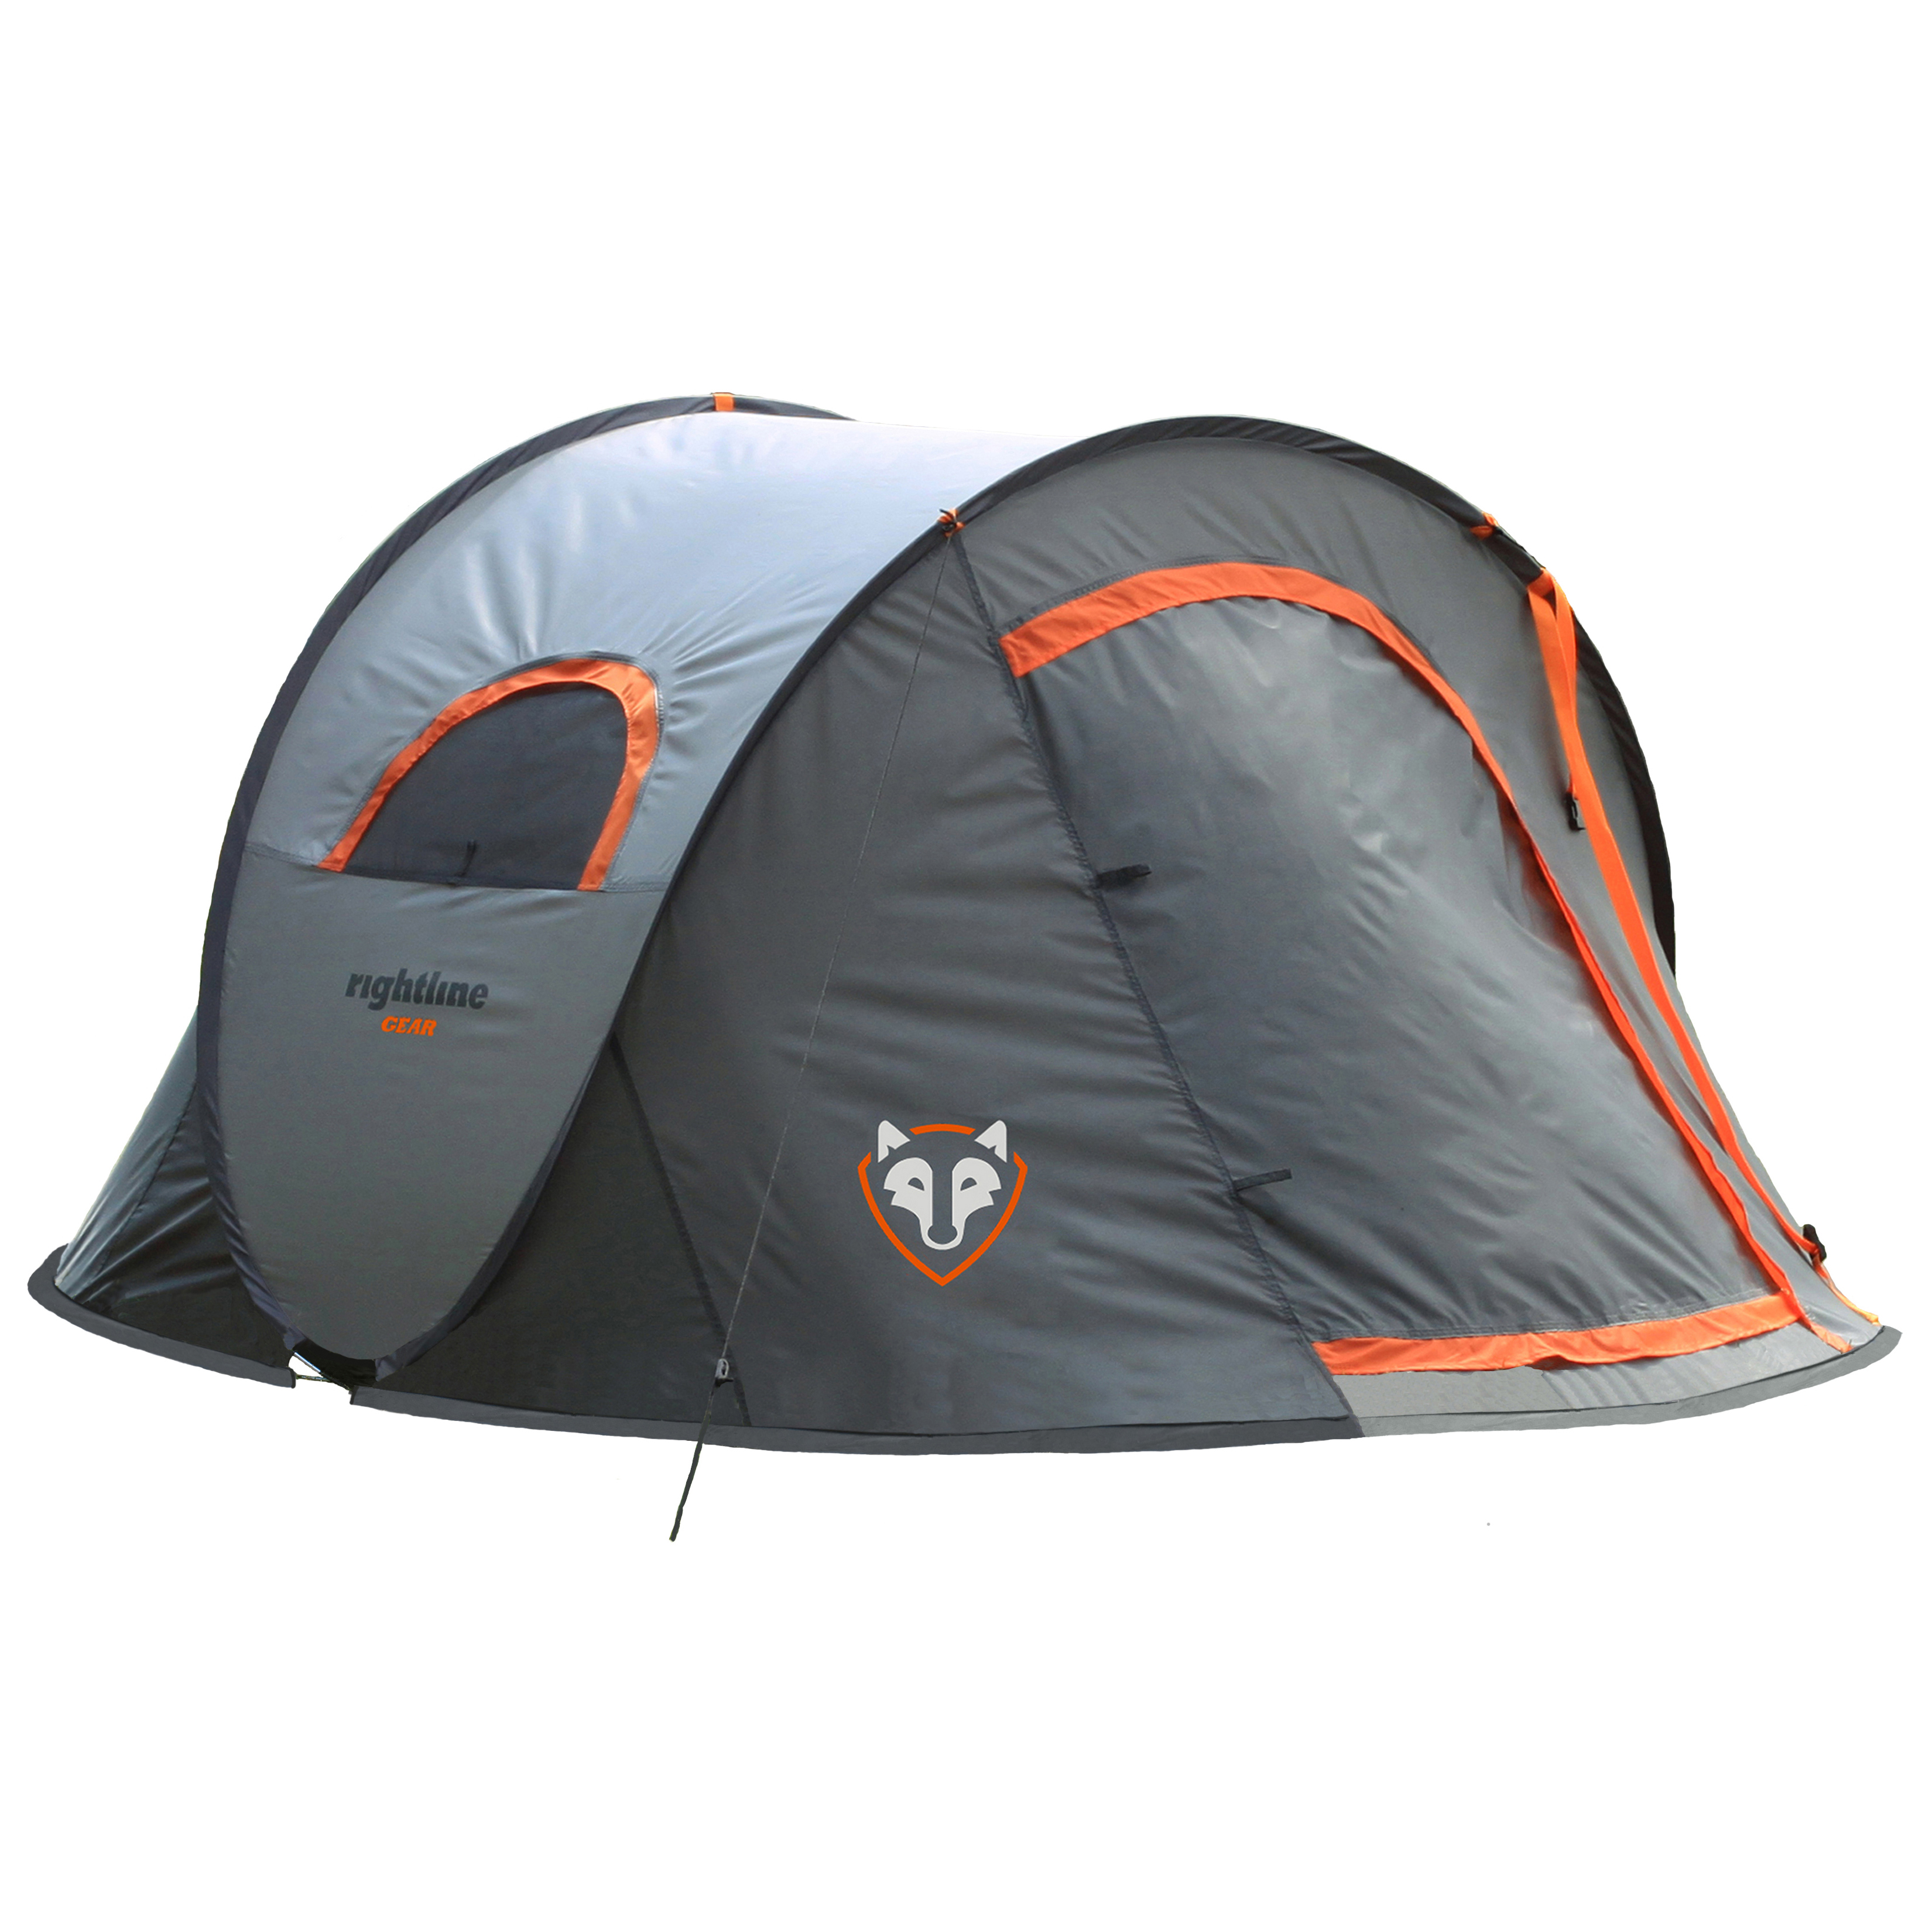 Rightline Gear Pop Up Tent, 110995